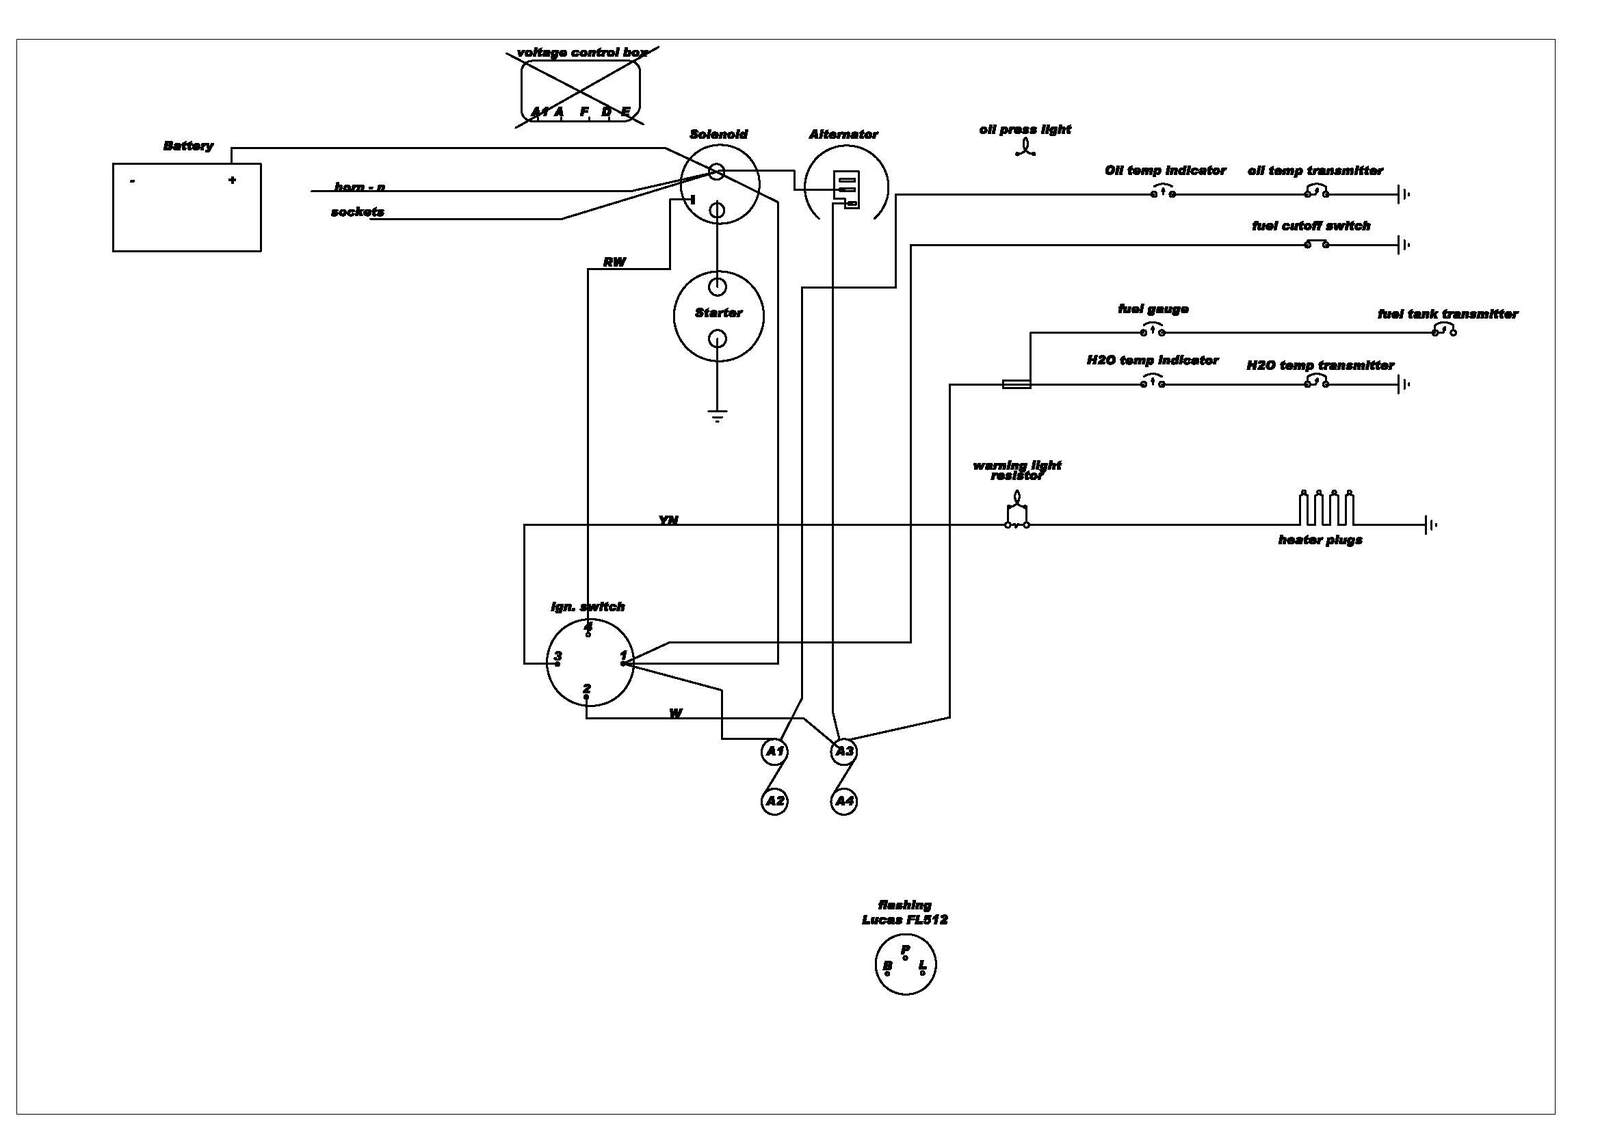 hight resolution of land rover discovery 2 abs wiring diagram